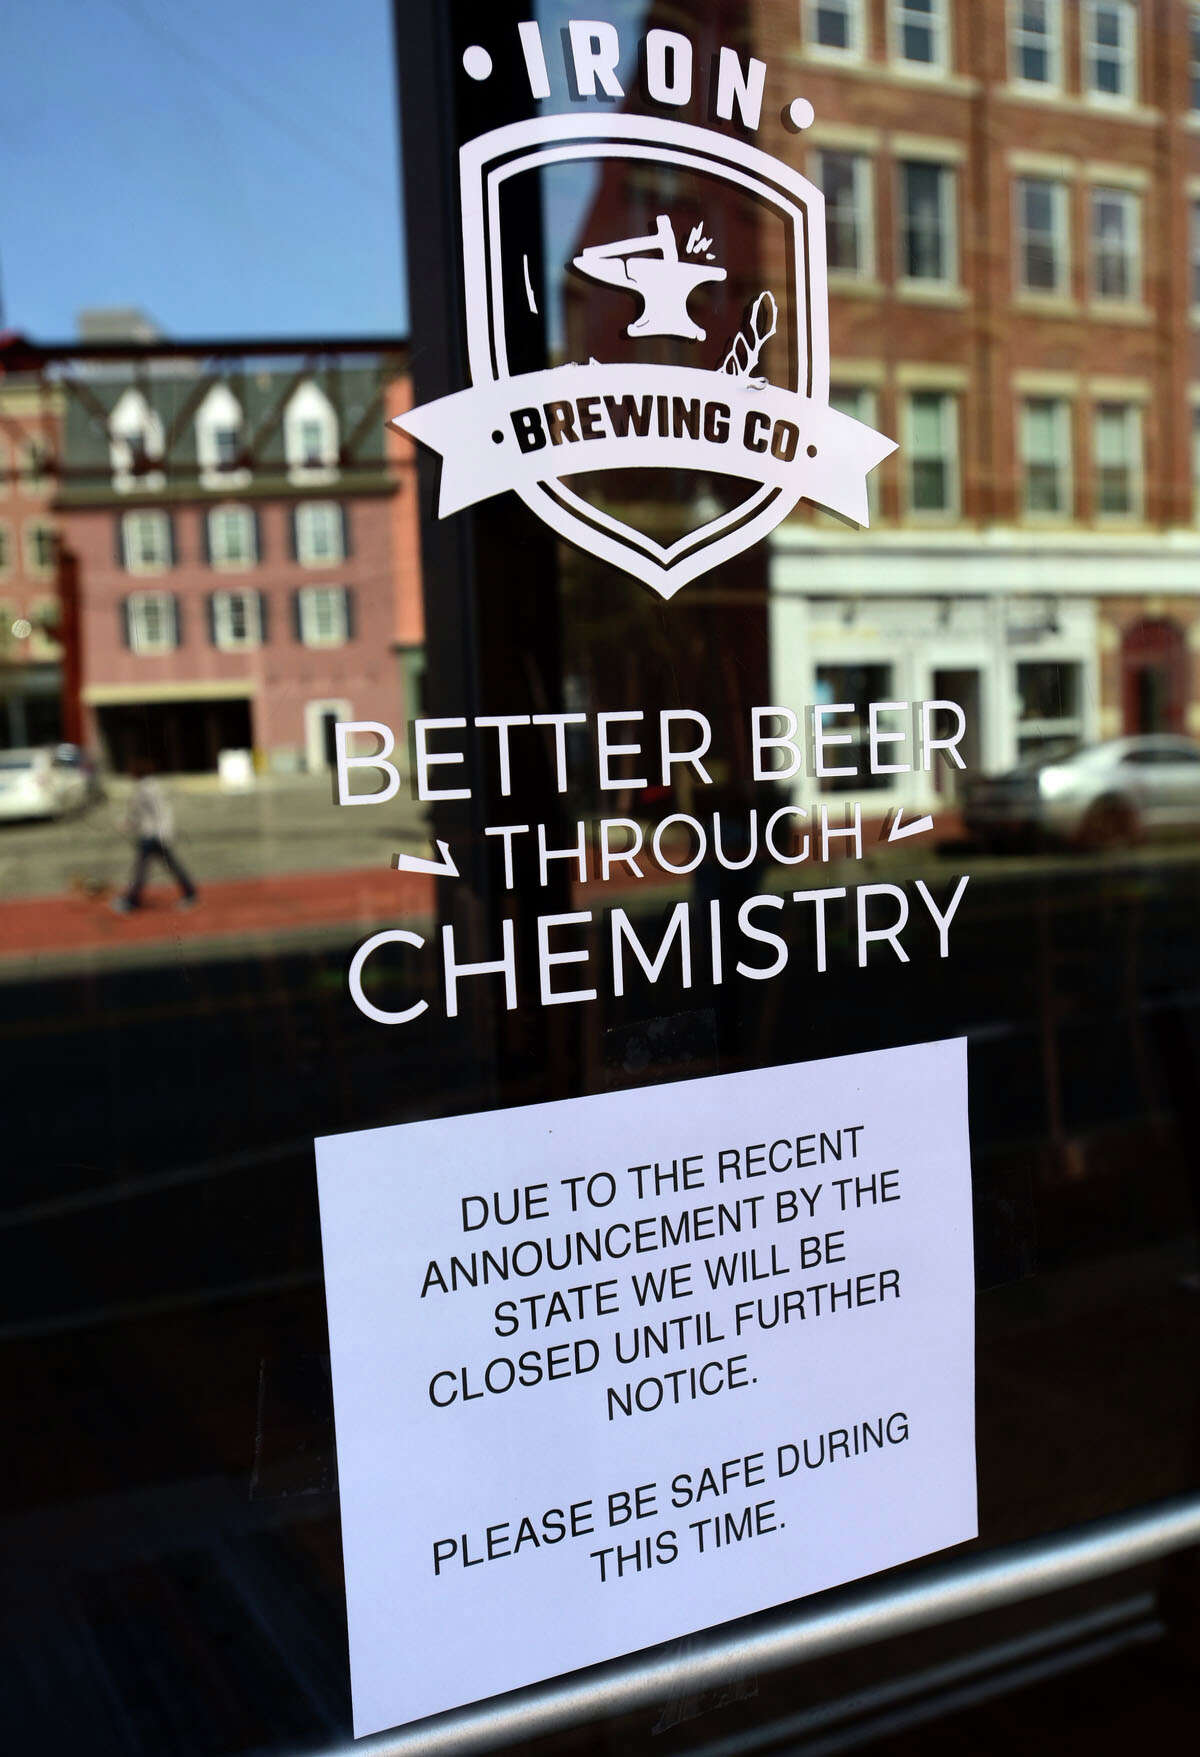 Restaurants along Washington Street including Iron Brewing post signs for closings or reduced service due to Corona Virus outbreak. Additionally, SoNo Brewing Company is aiming at opening its first taproom in South Norwalk in 2021.